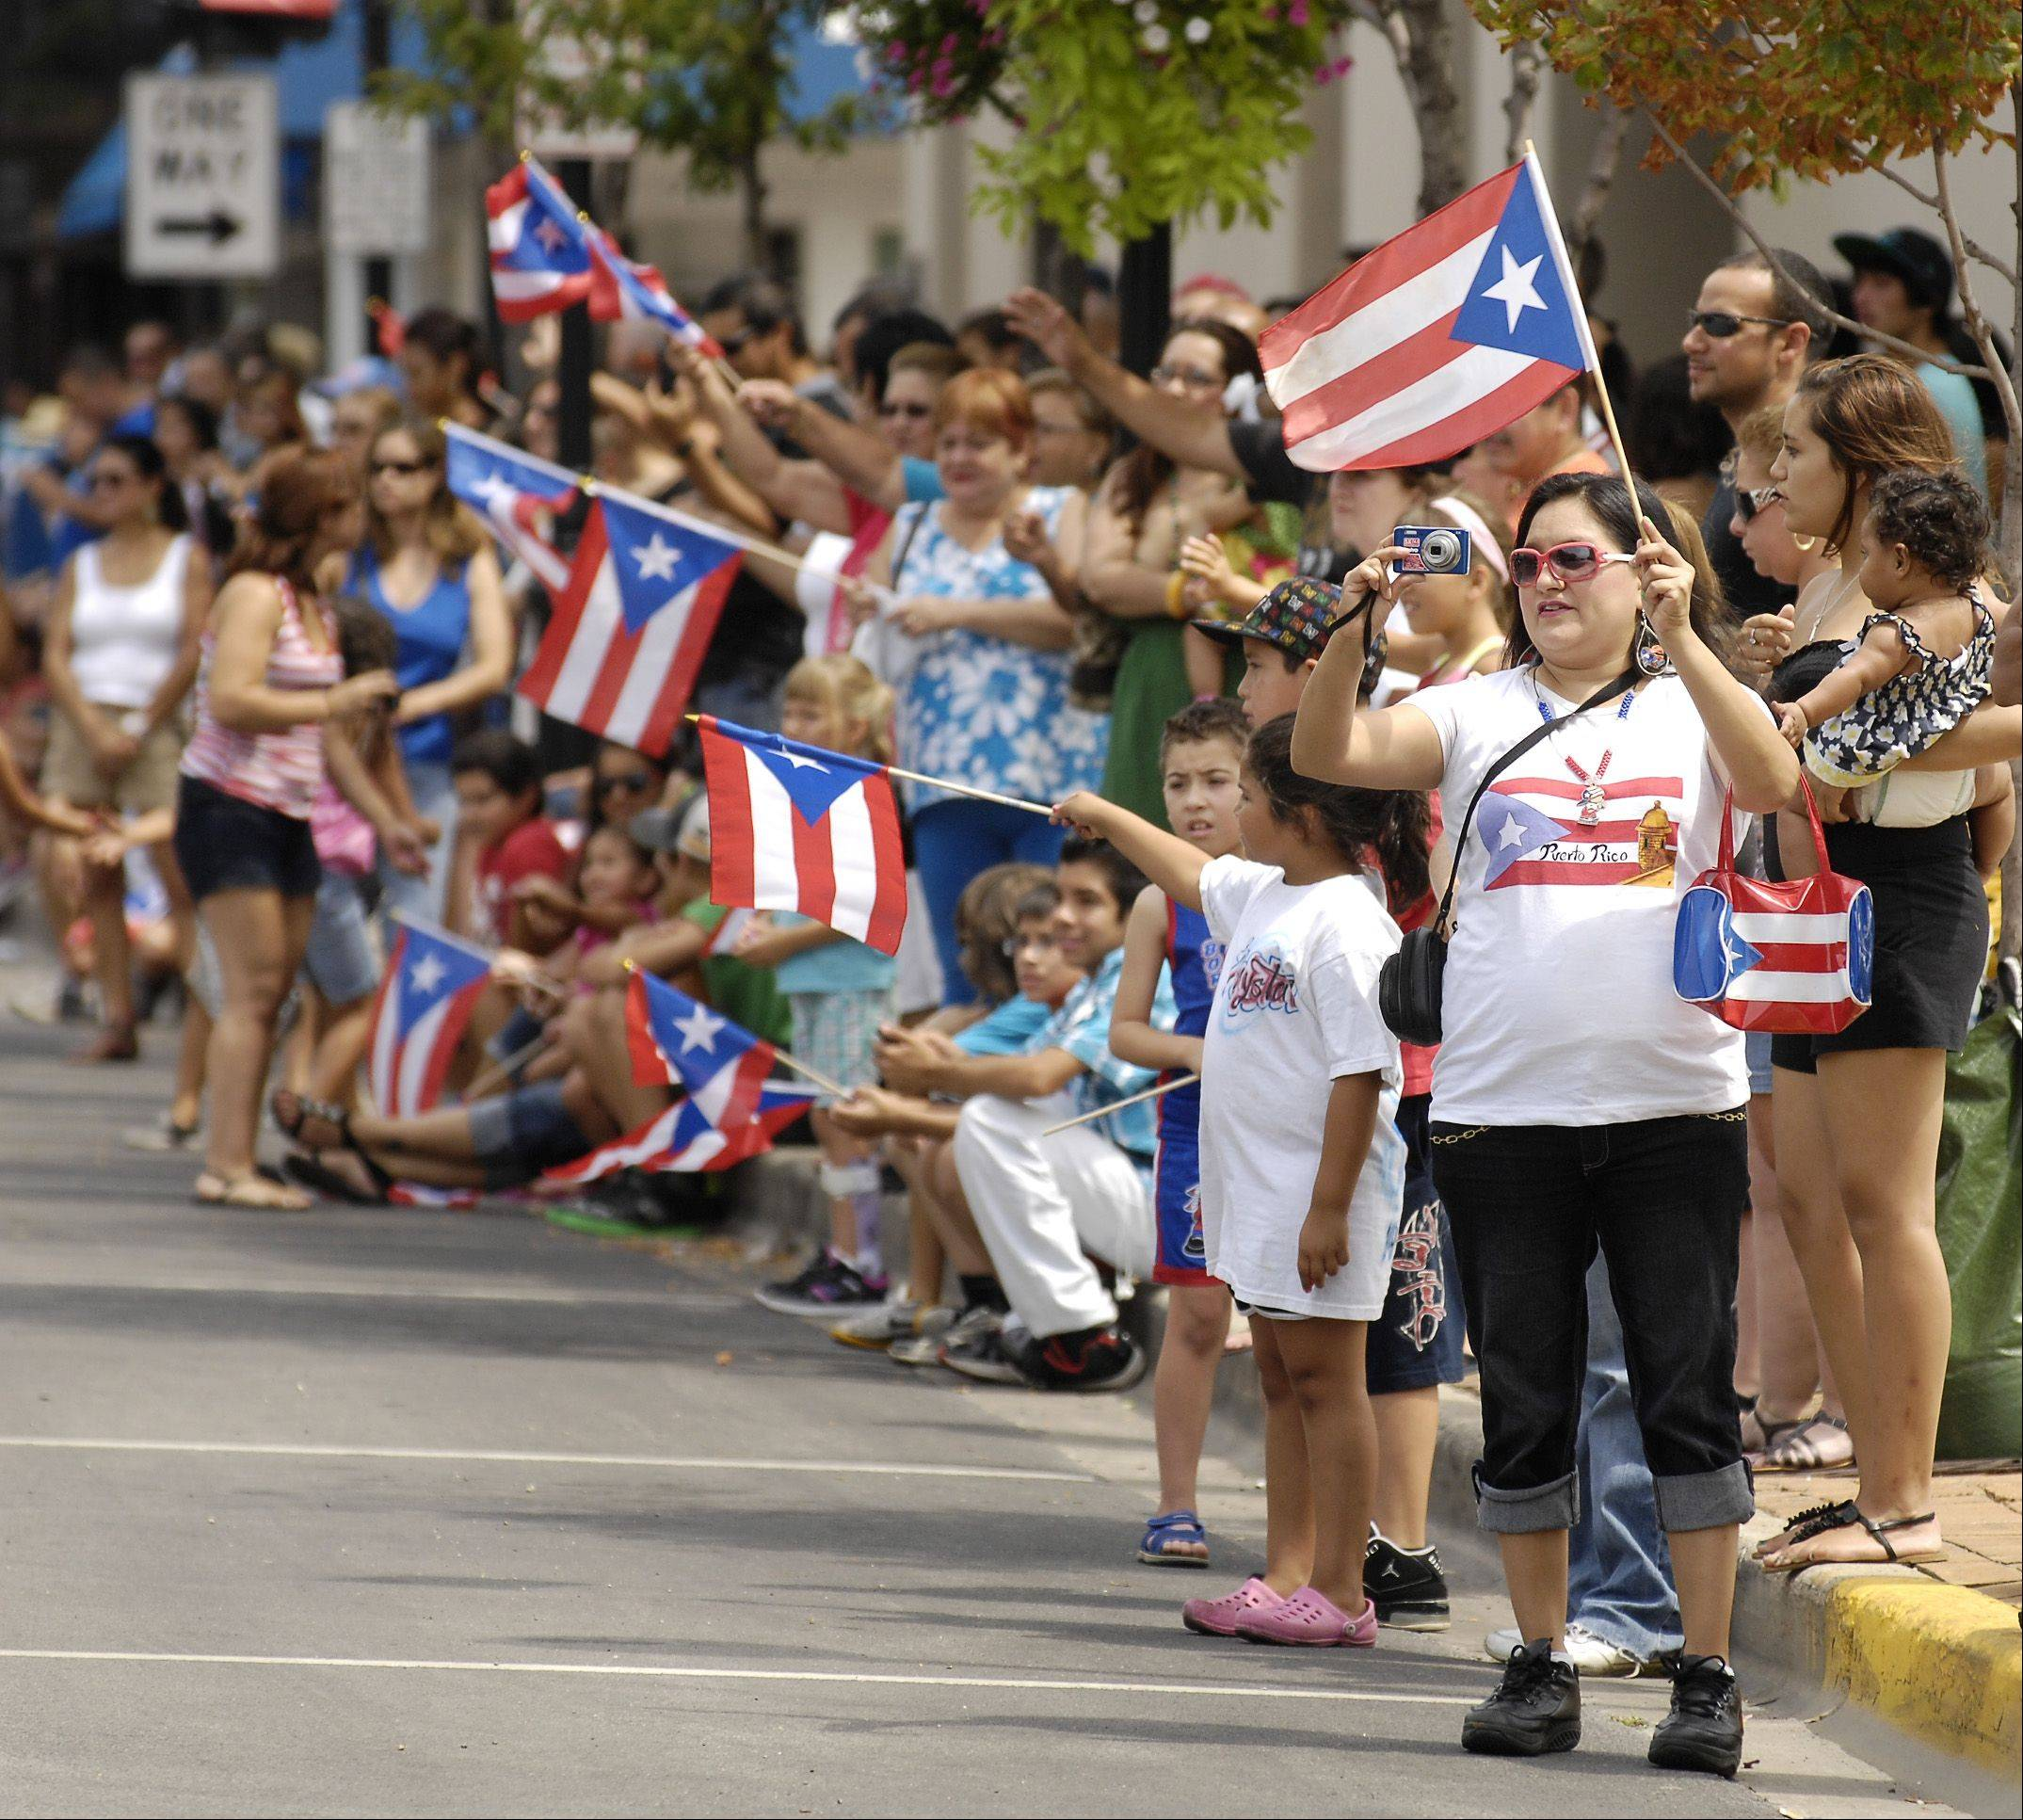 Sunday's parade will be one of the highlights of this year's Puerto Rican Heritage Fest in Aurora. Organizers expect as many as 9,000 people to attend.